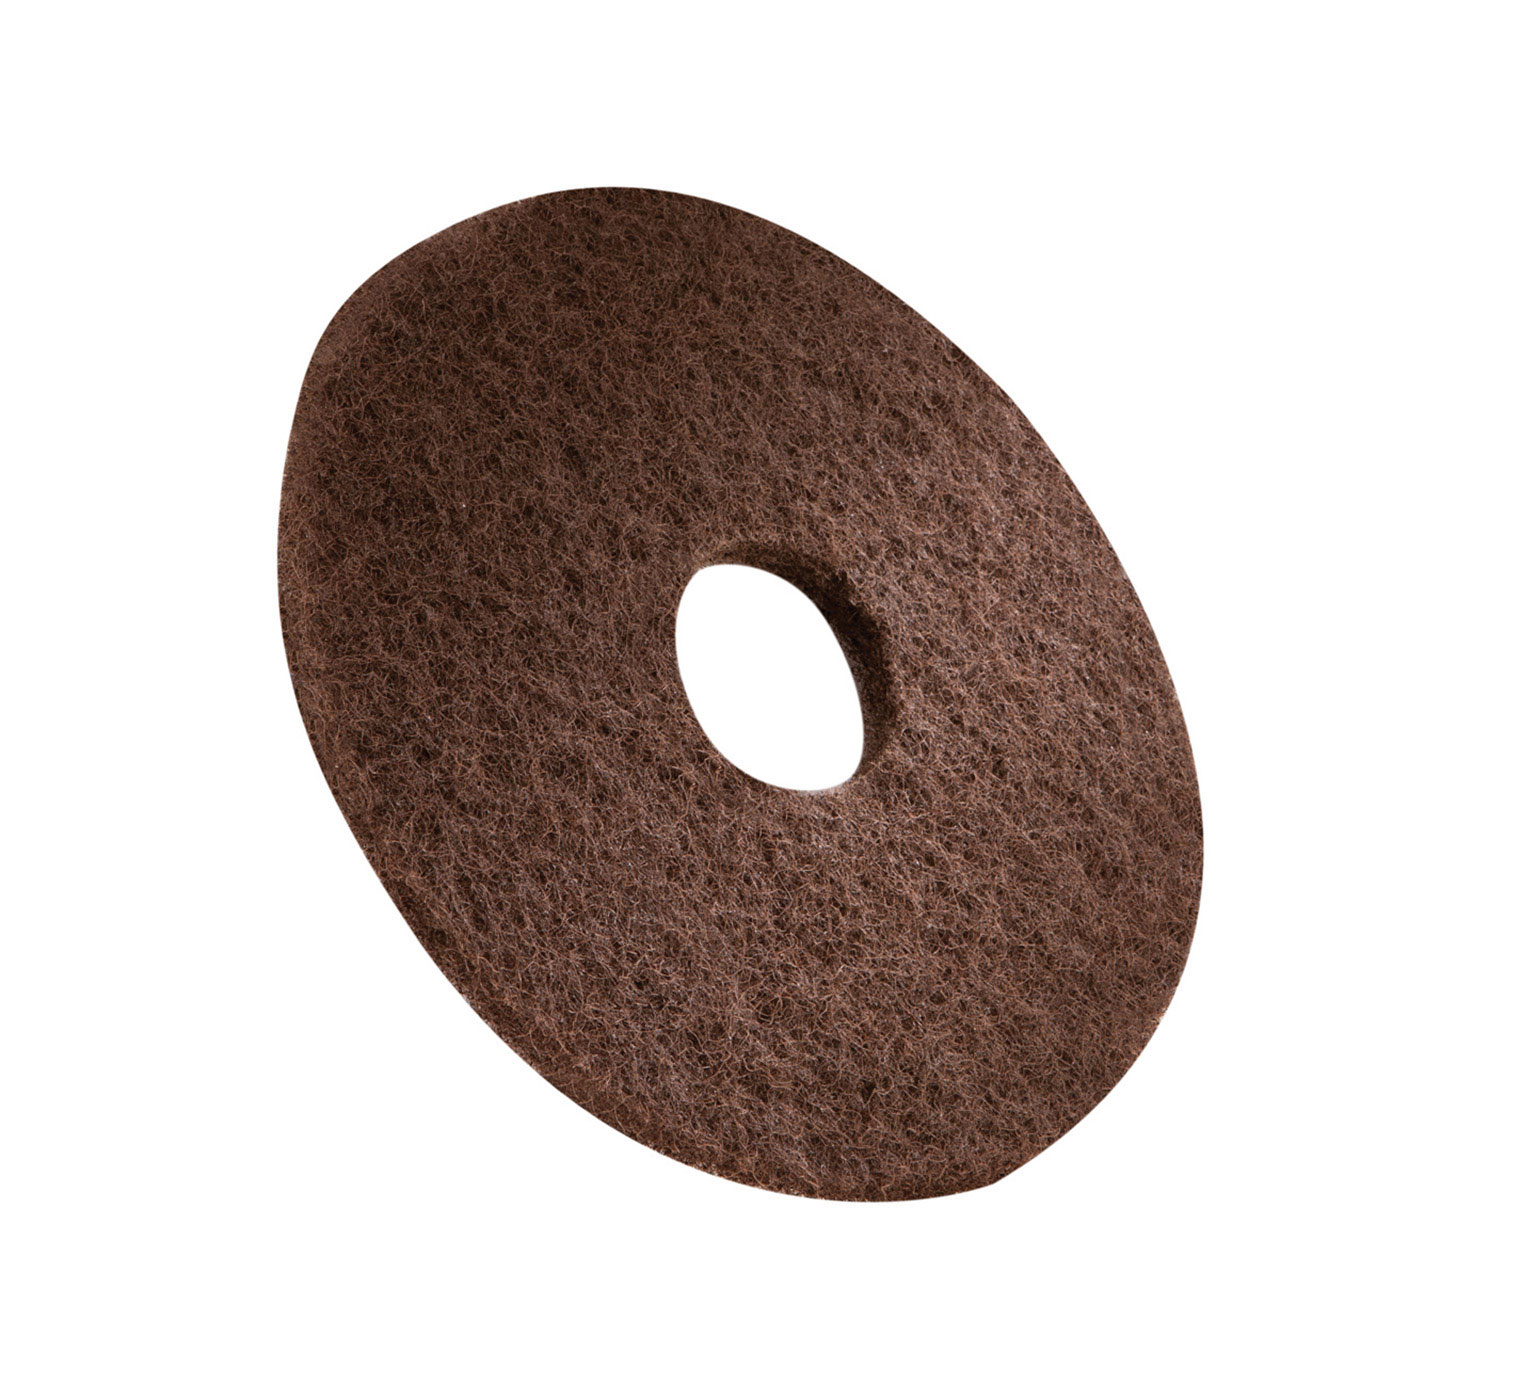 3m Brown Stripping Pad 13 In 330 Mm 89046